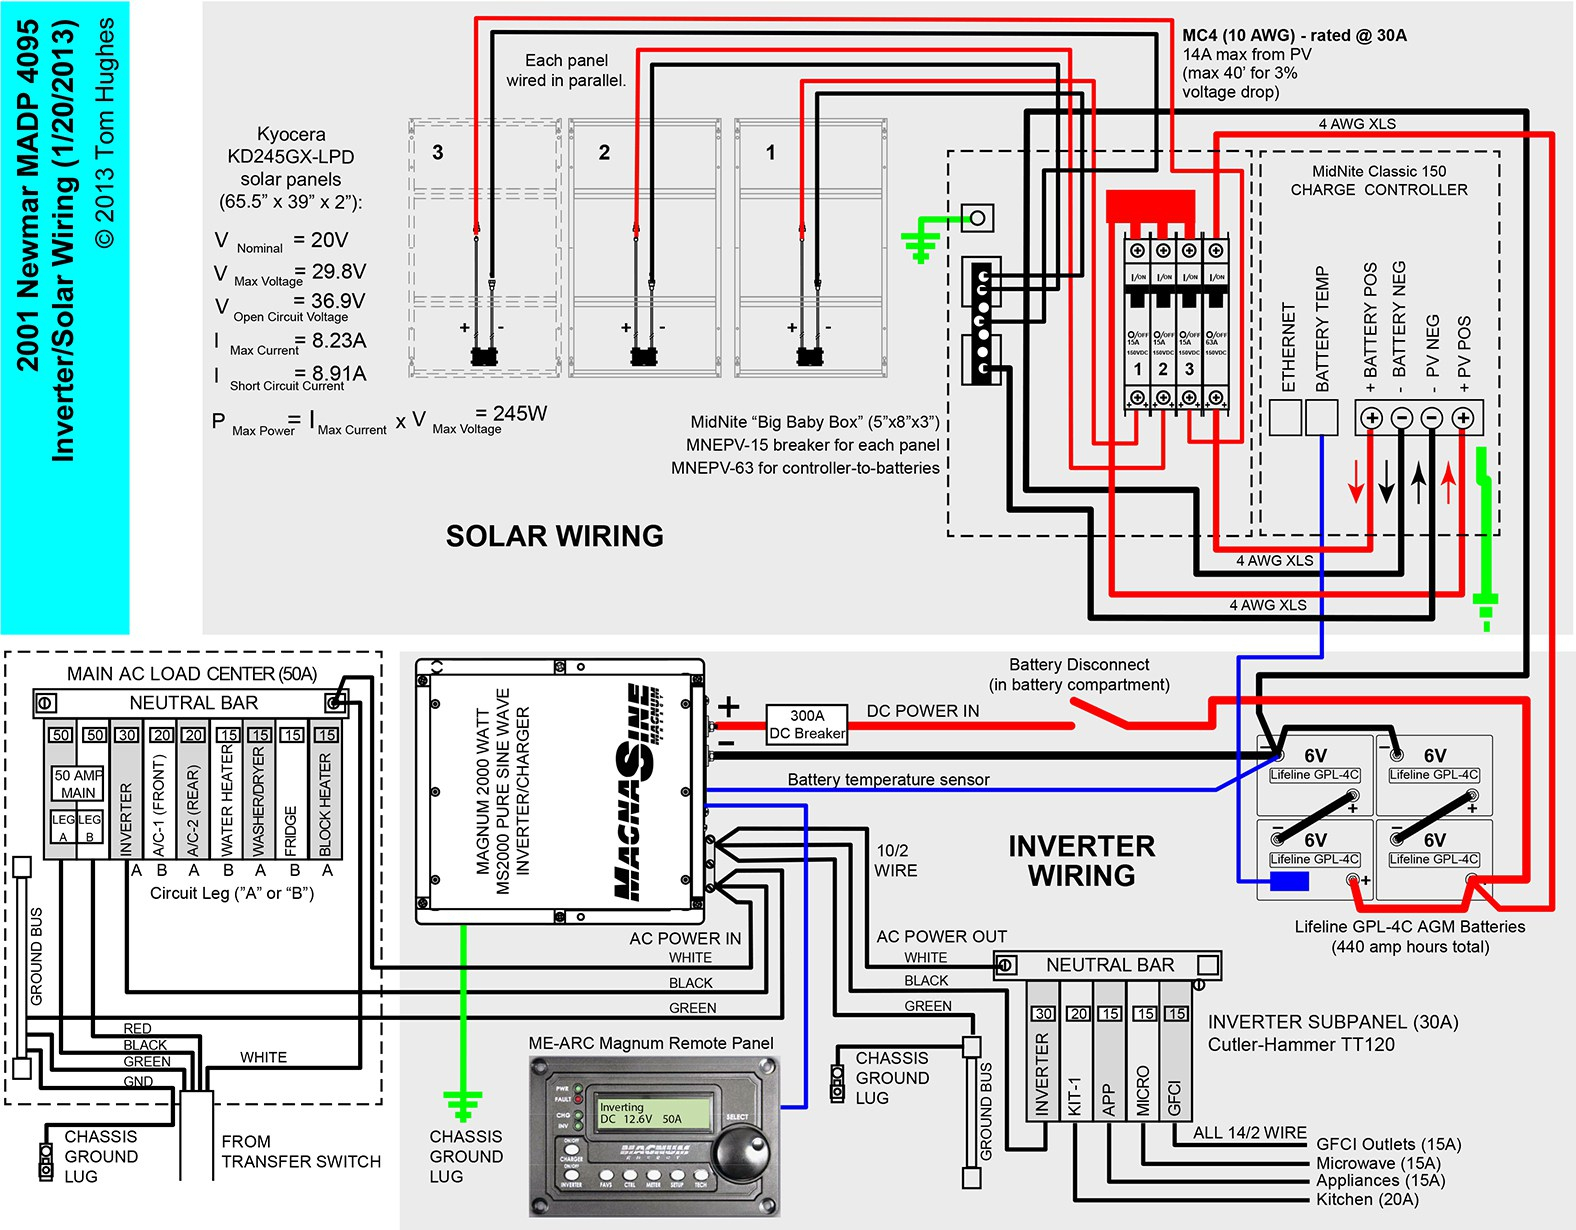 Typical Rv Electrical Wiring Diagram | Wiring Diagram - Rv Electrical Wiring Diagram